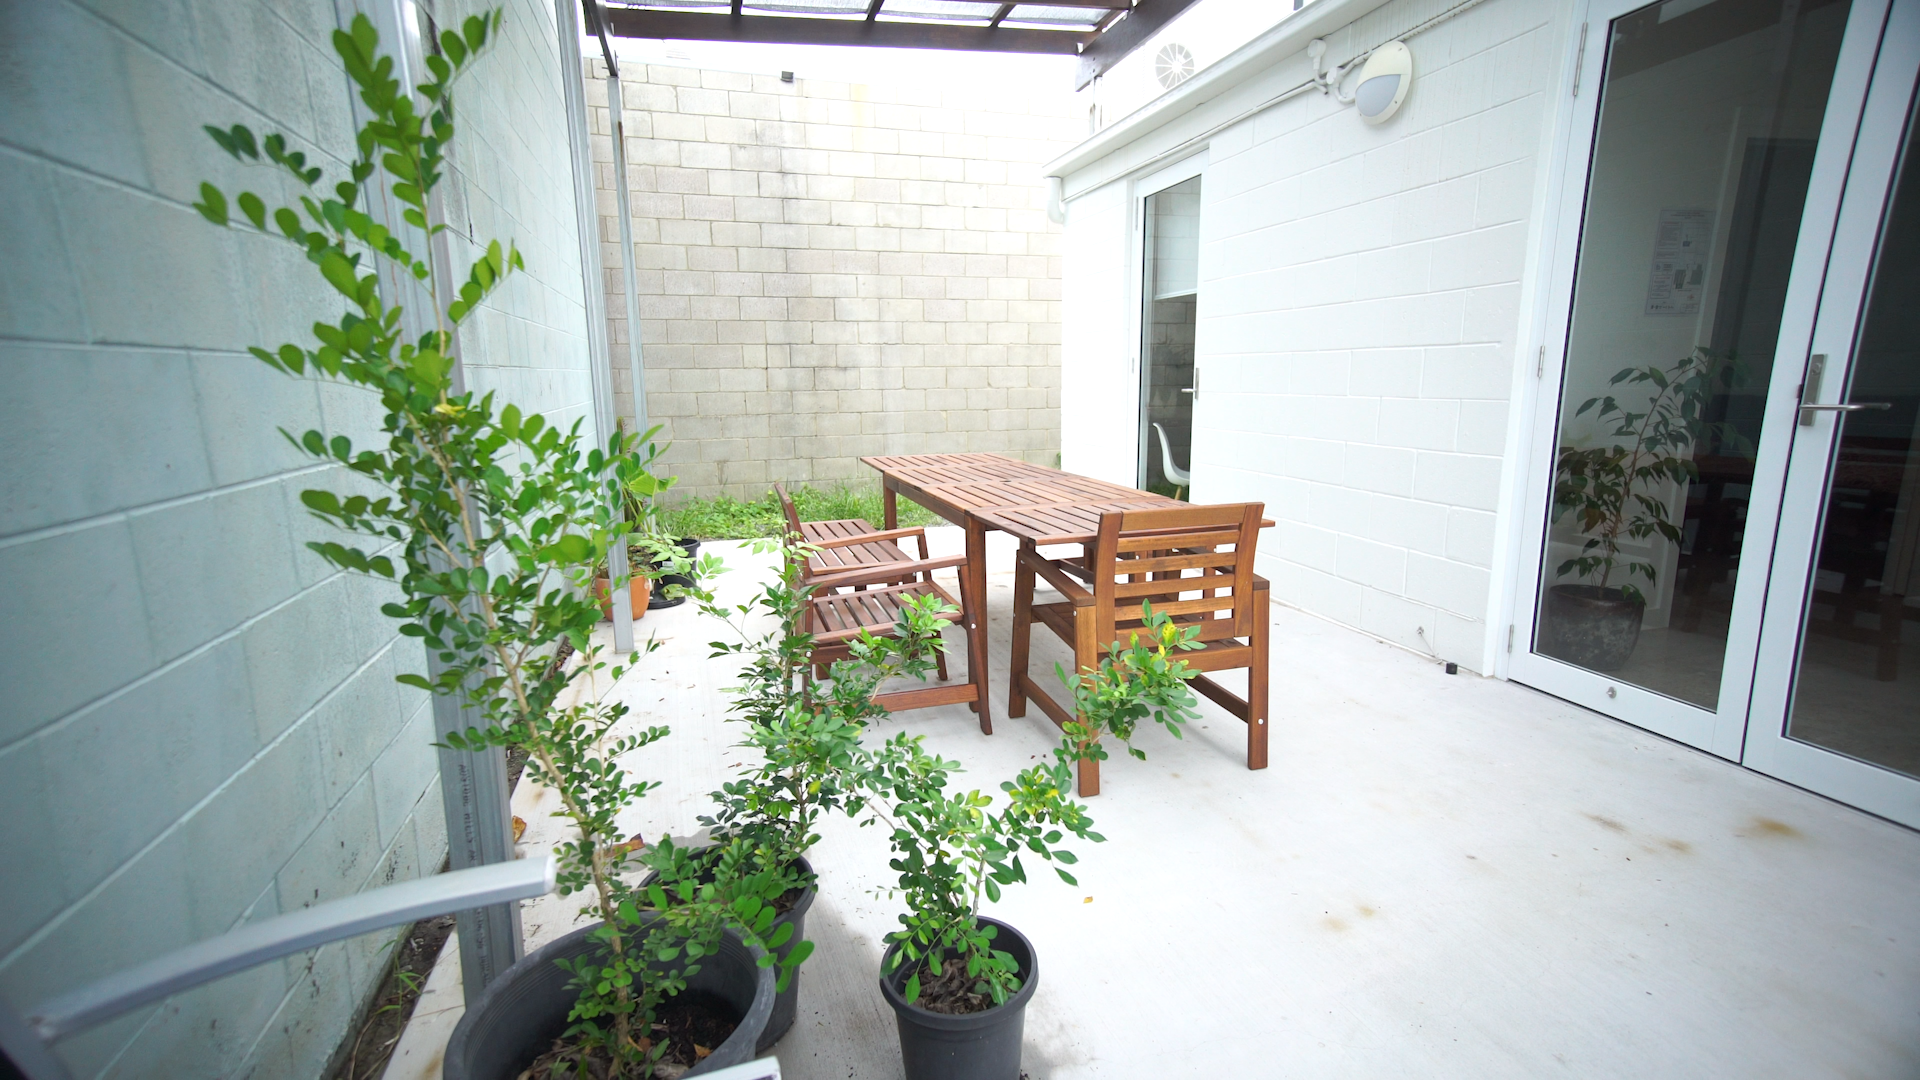 An outdoor brick courtyard with a brown wooden outdoor setting and green plants